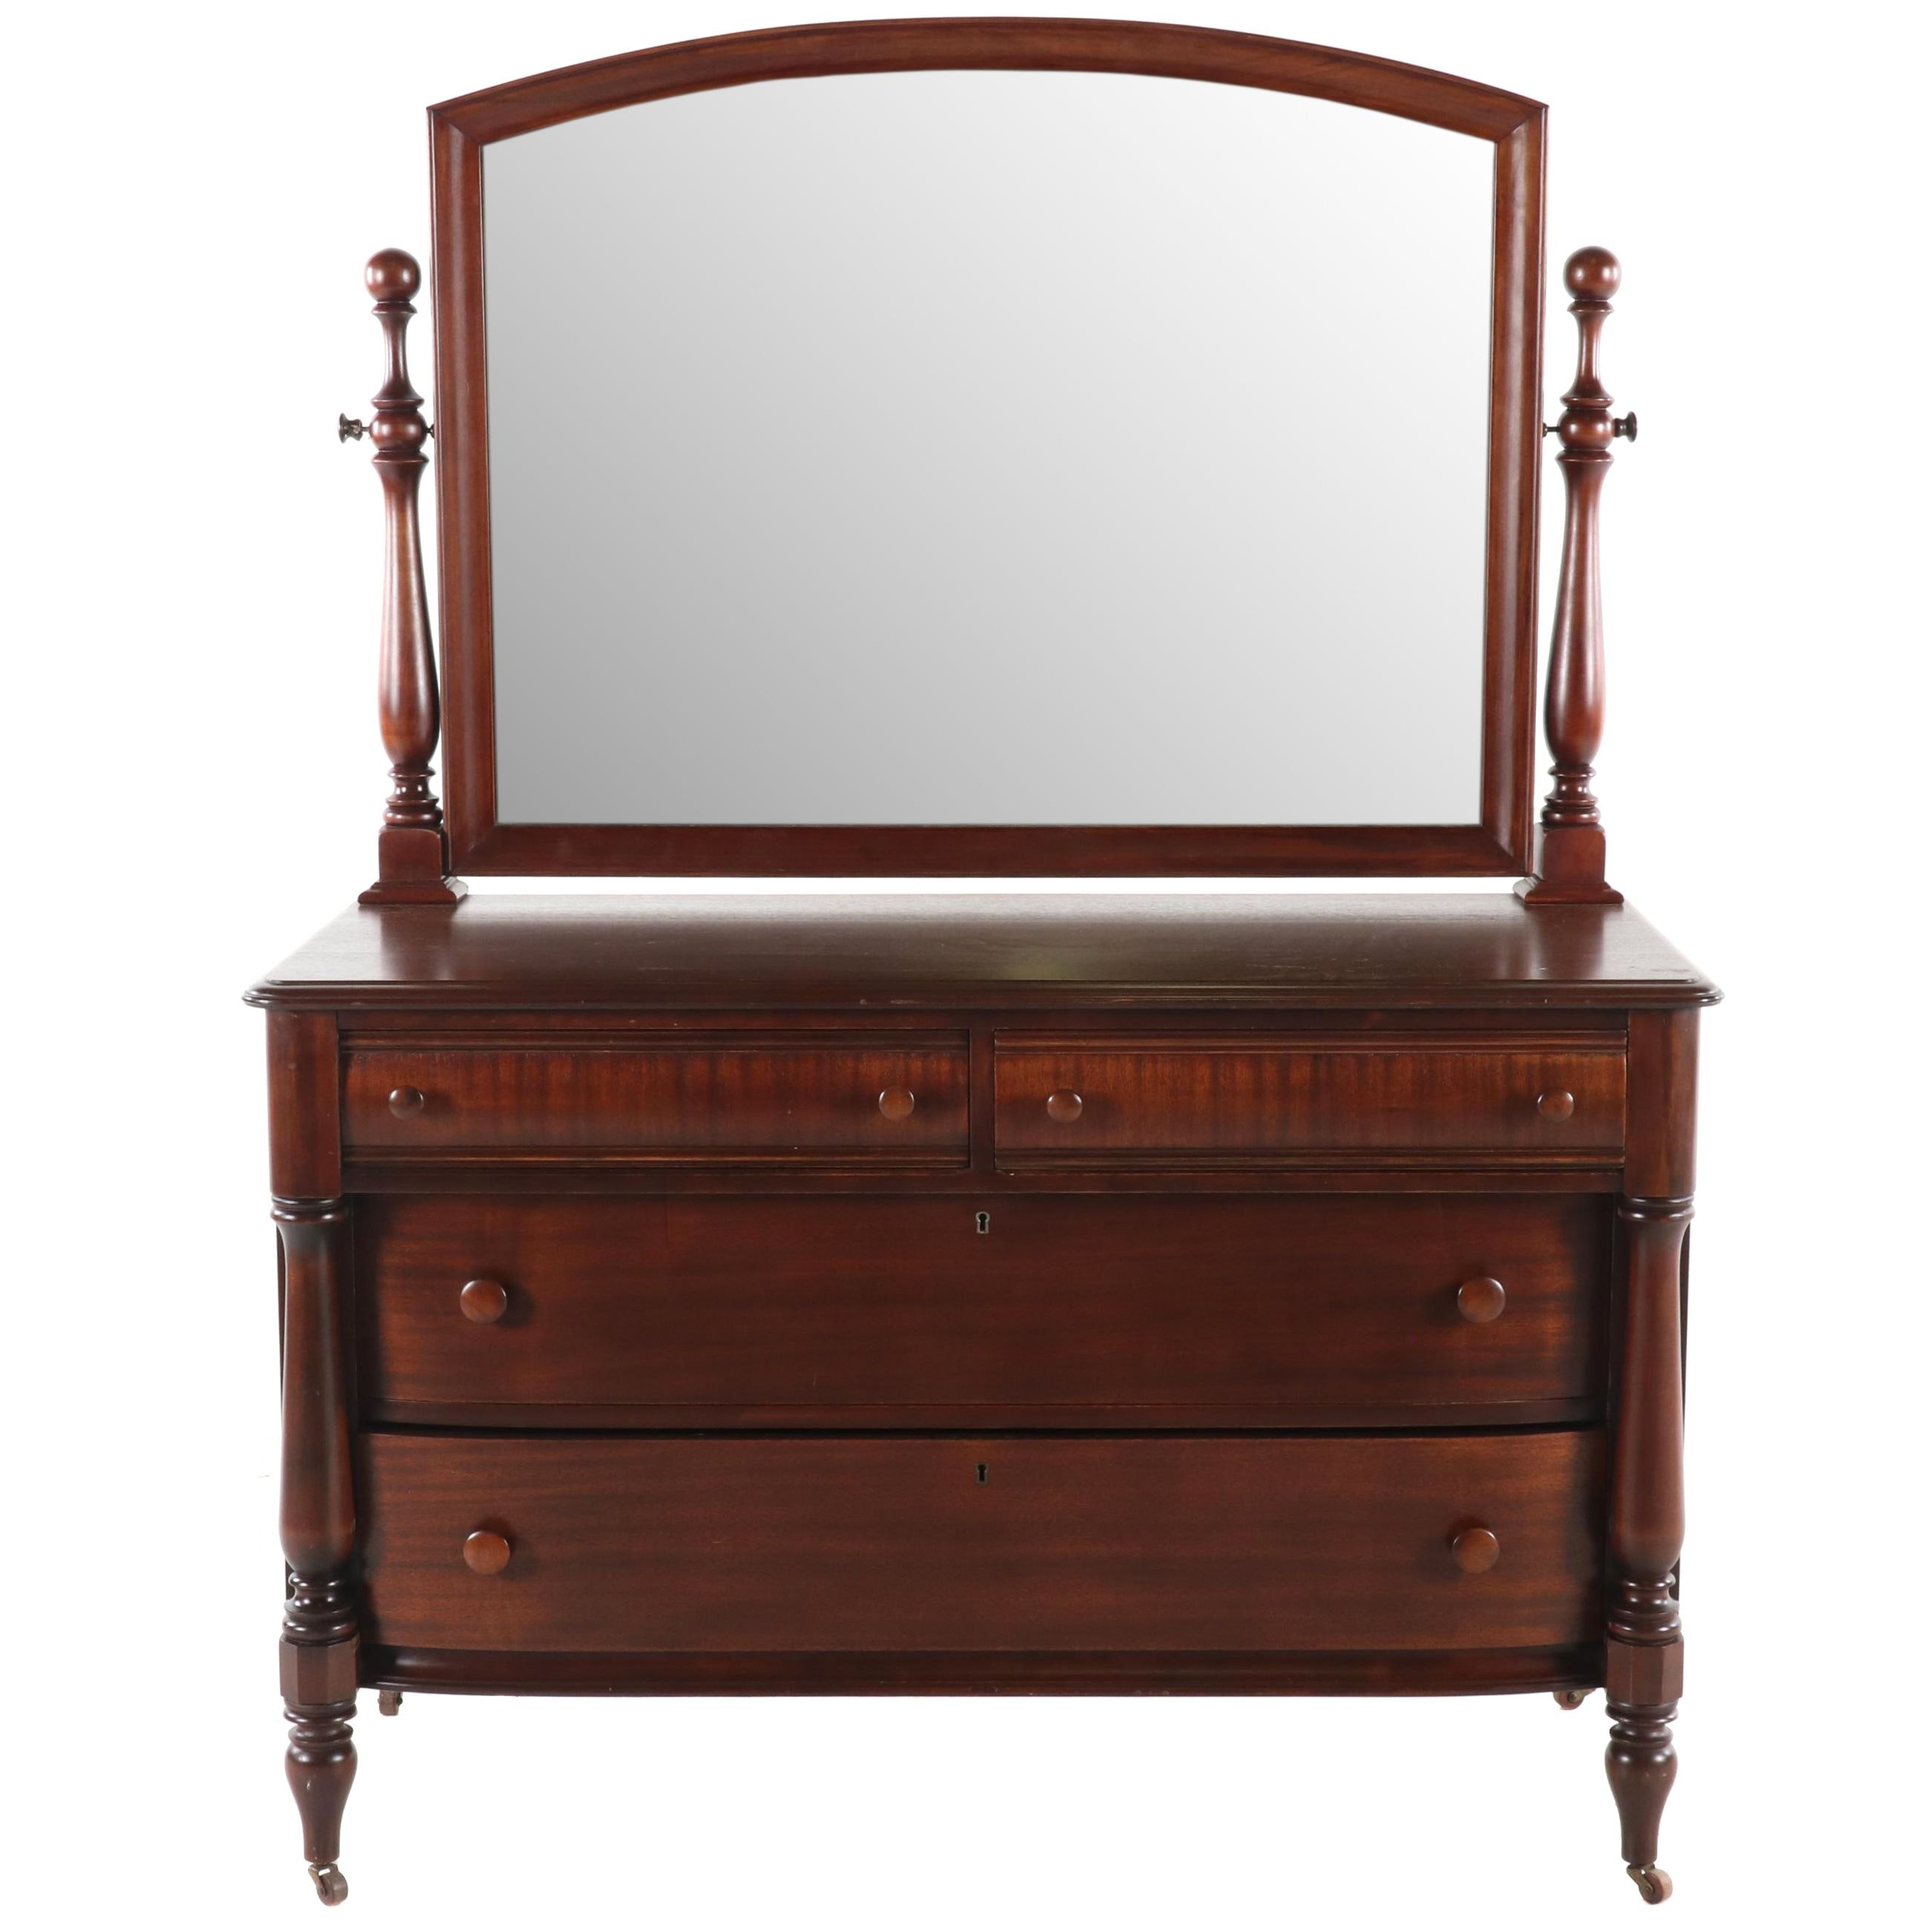 Transitional Mahogany Chest of Drawers, 1920s